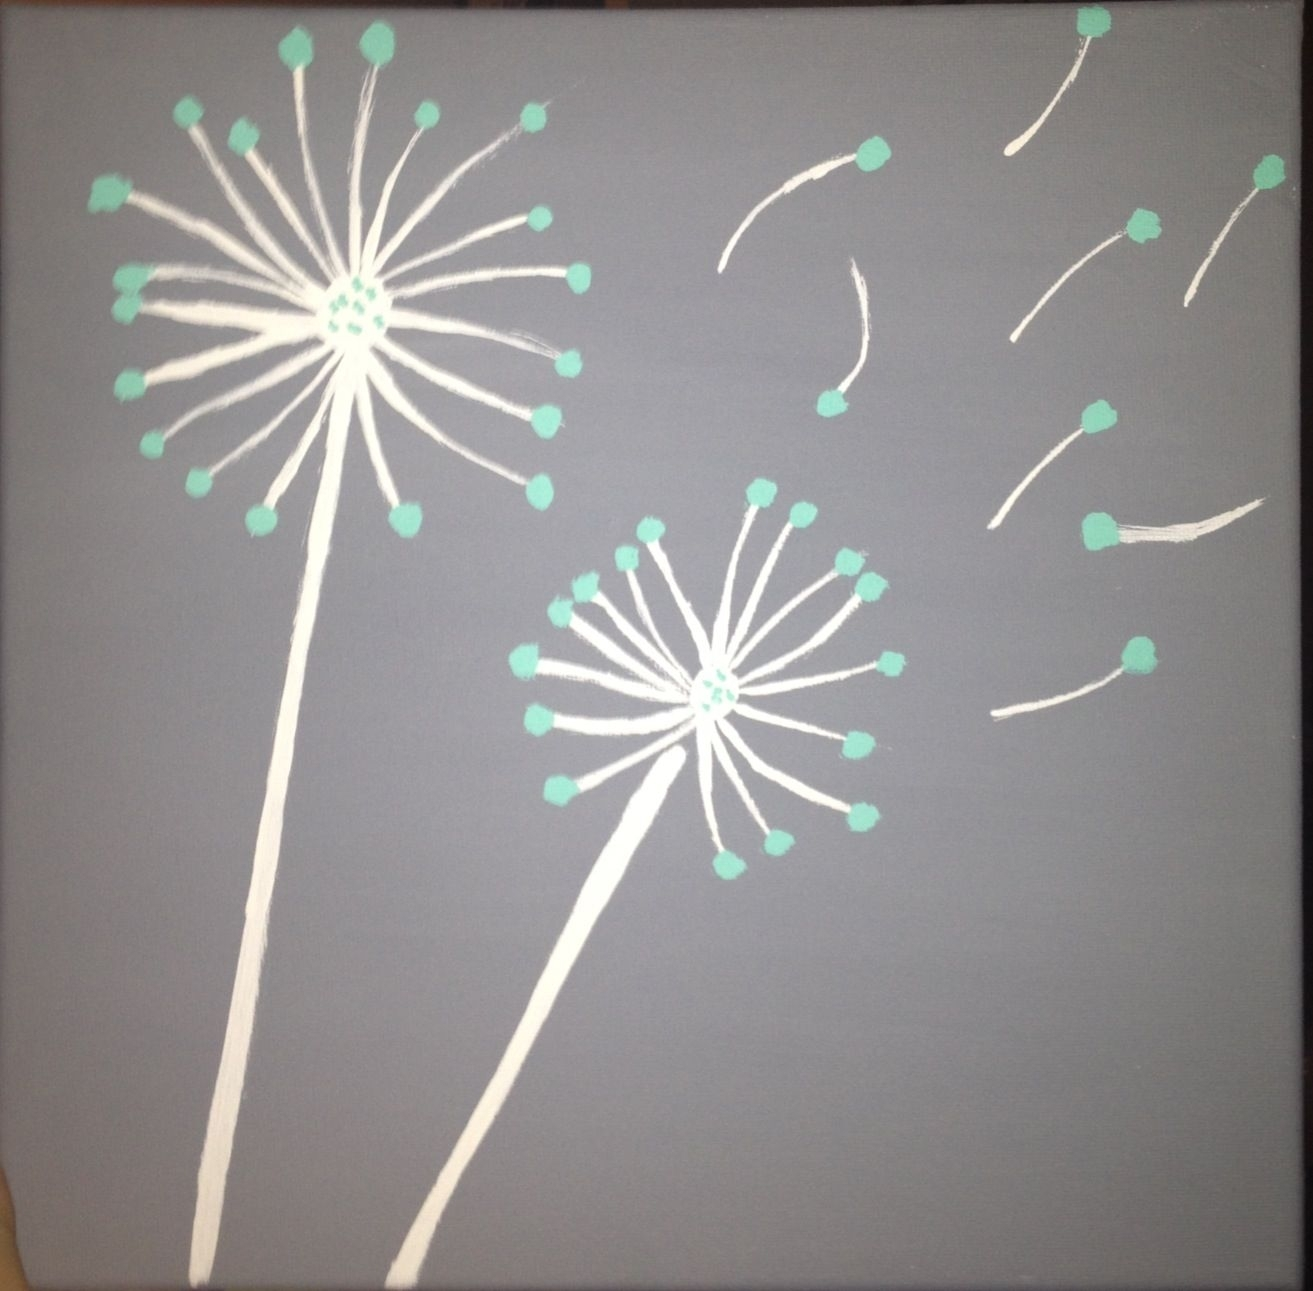 Teal And Gray Diy Dandelion Canvas Painting | Art | Pinterest In Most Up To Date Dandelion Canvas Wall Art (View 14 of 15)